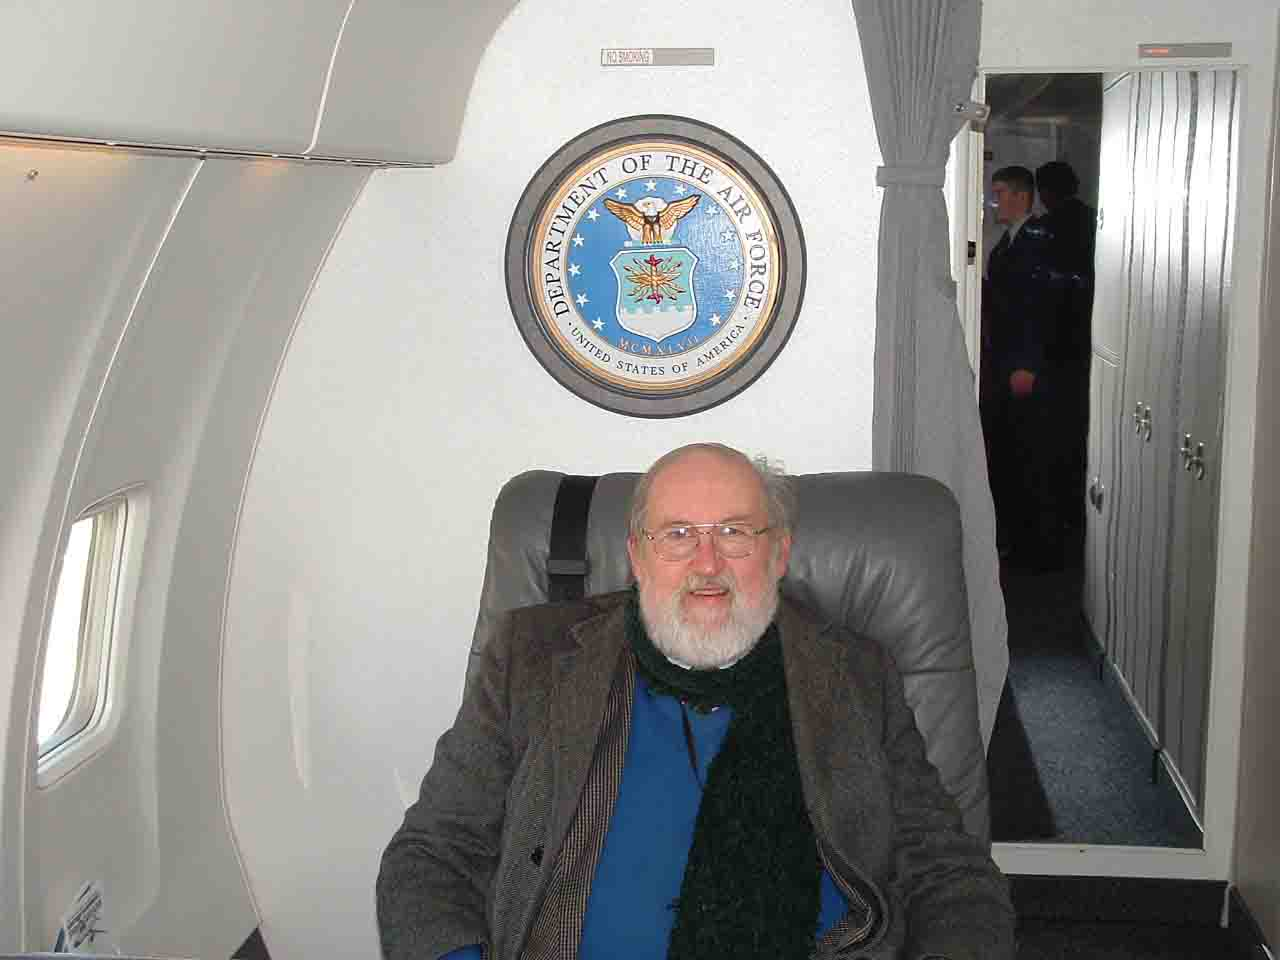 Craig B. Waff sitting in Air Force Two (in one of the several aircraft that conveys the U.S. Vice President) in December 2005 while he was detailed as historian to the 89th Airlift Wing at Andrews AFB.